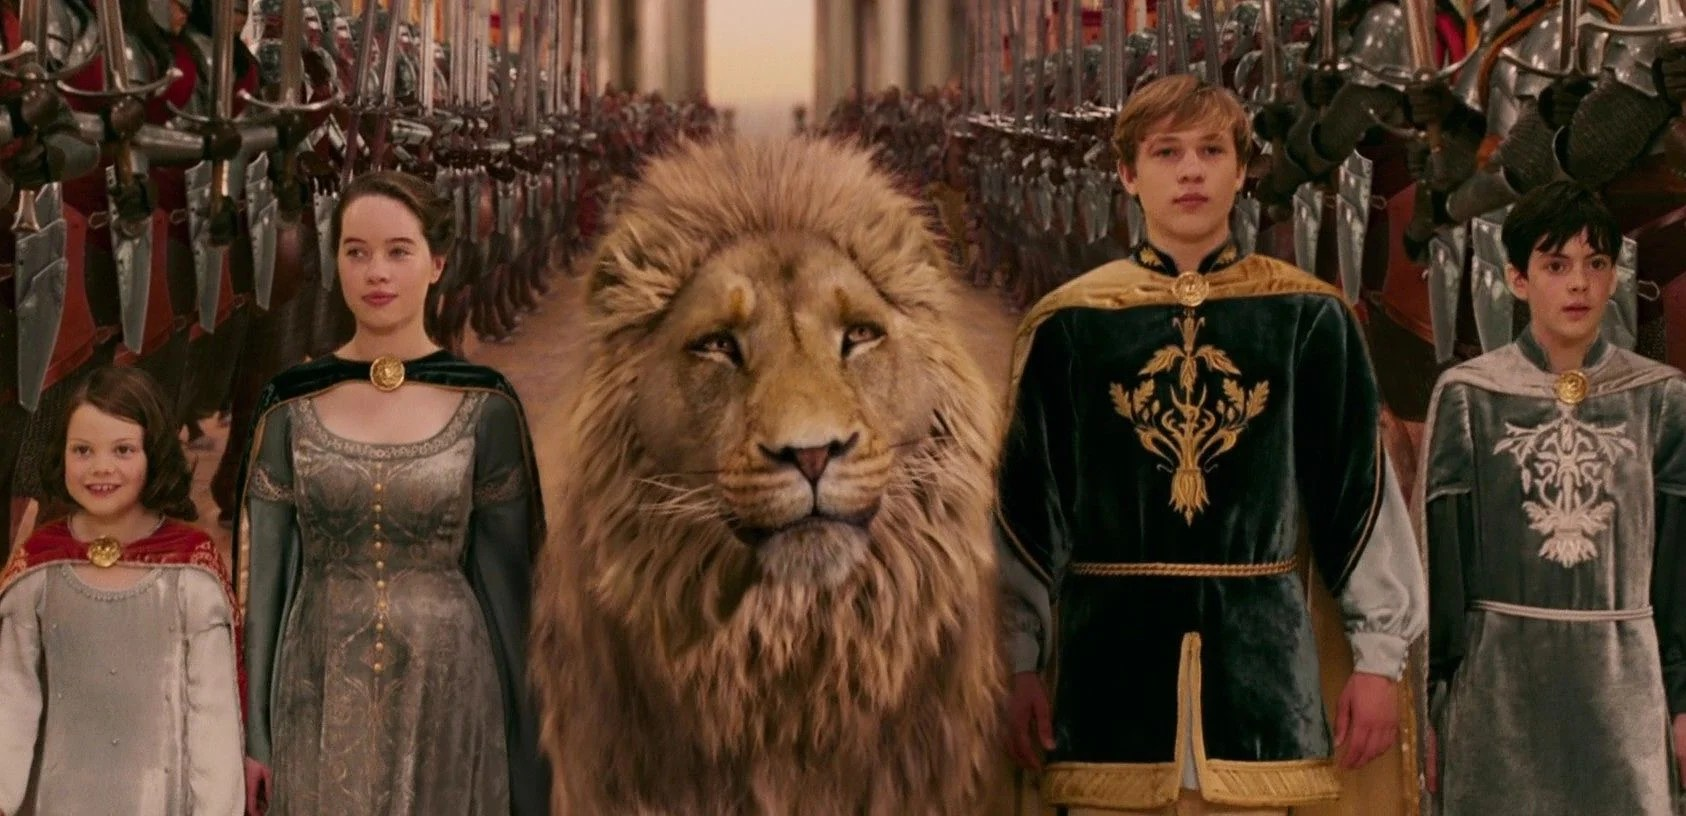 Narnia Franchise To Be Rebooted With Fourth Movie The